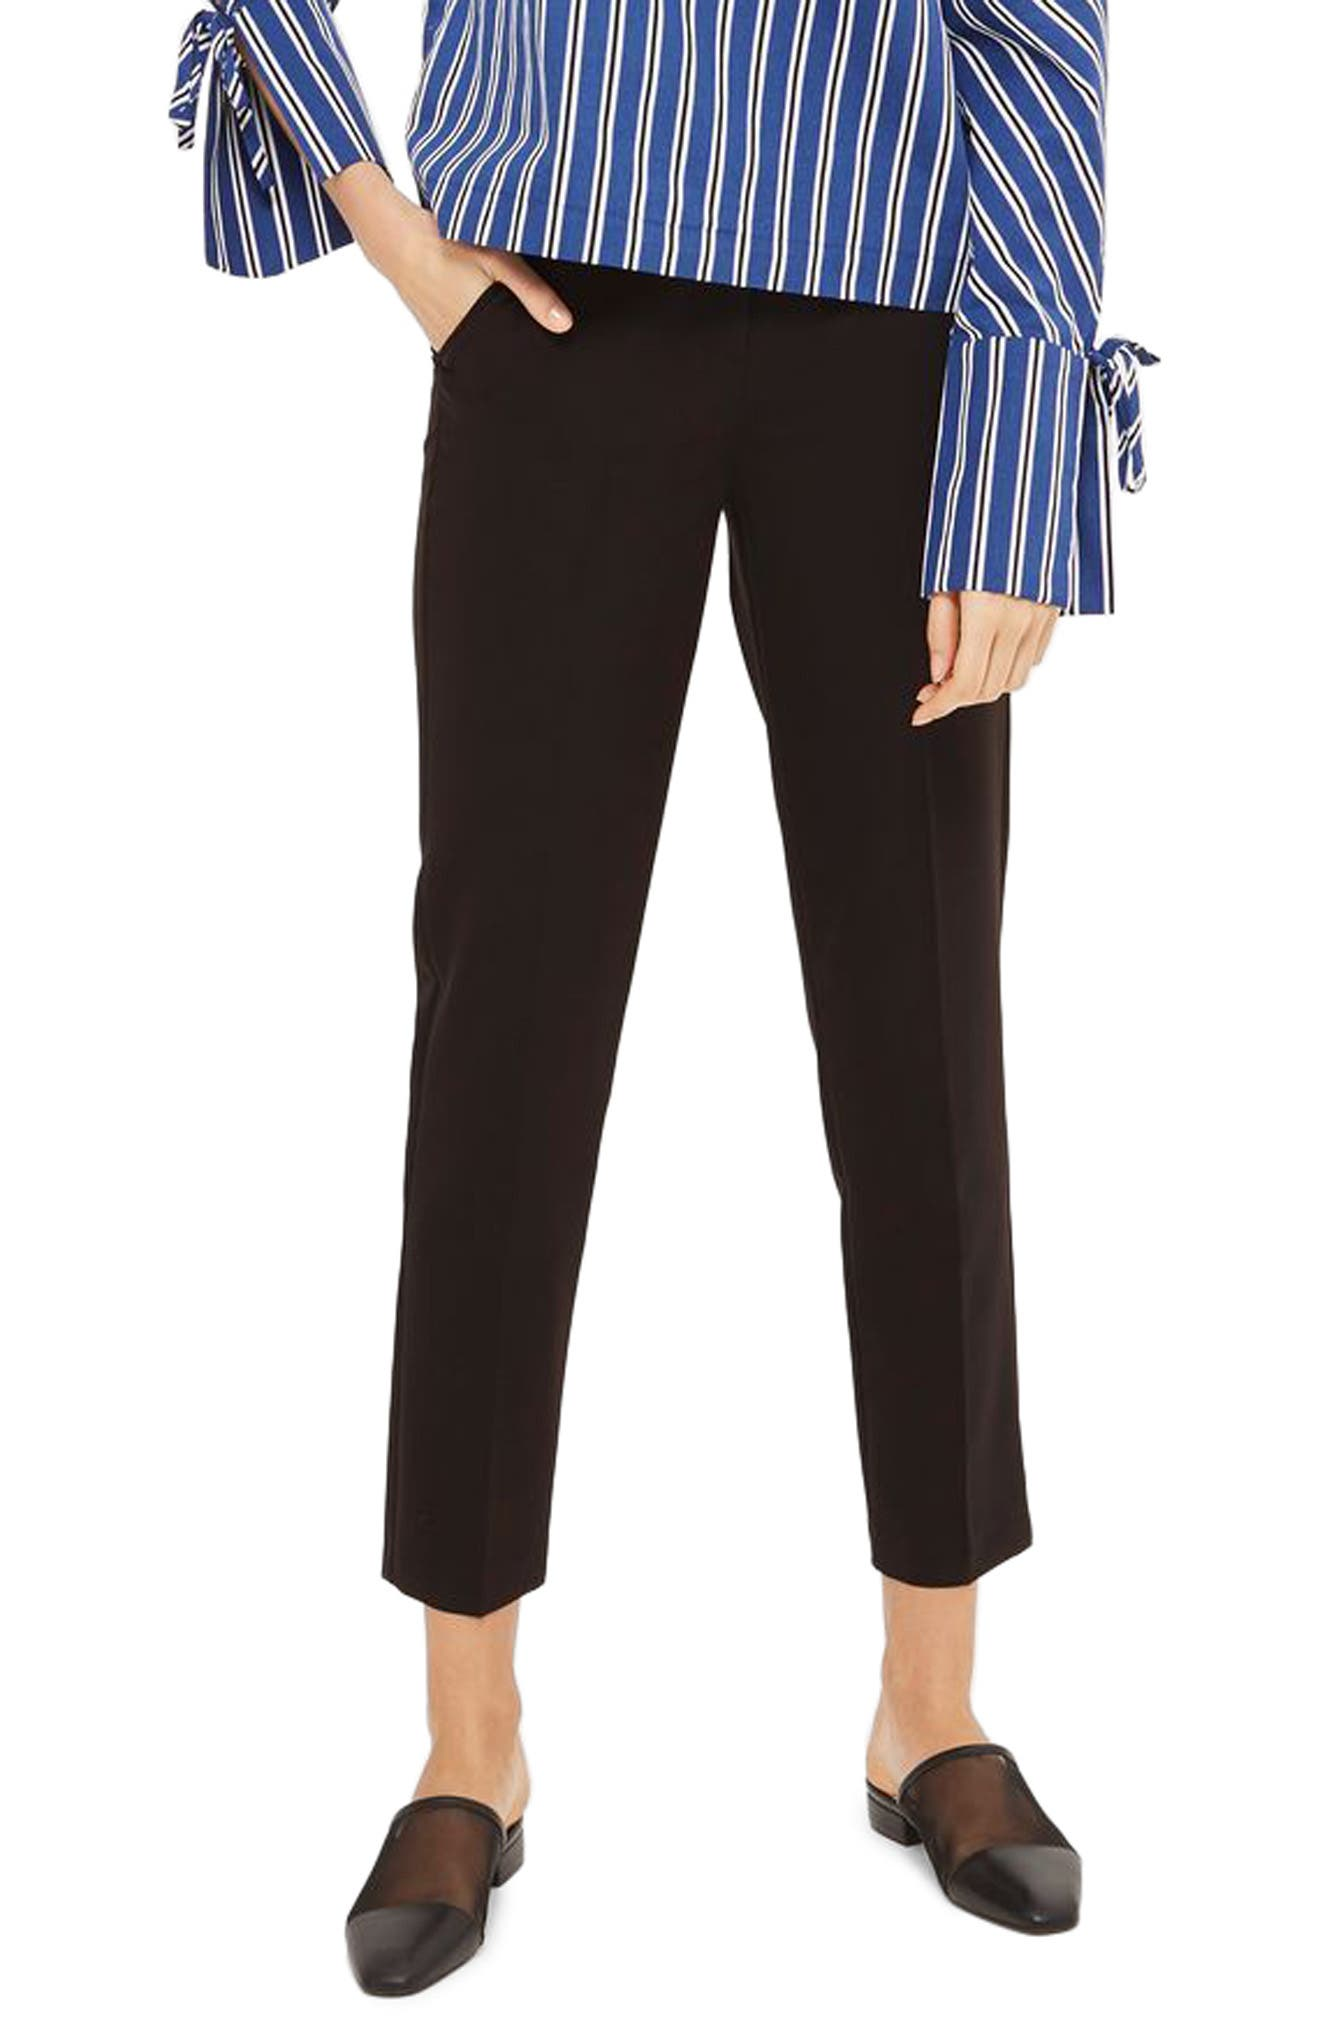 Alternate Image 1 Selected - Topshop High Waist Cigarette Trousers